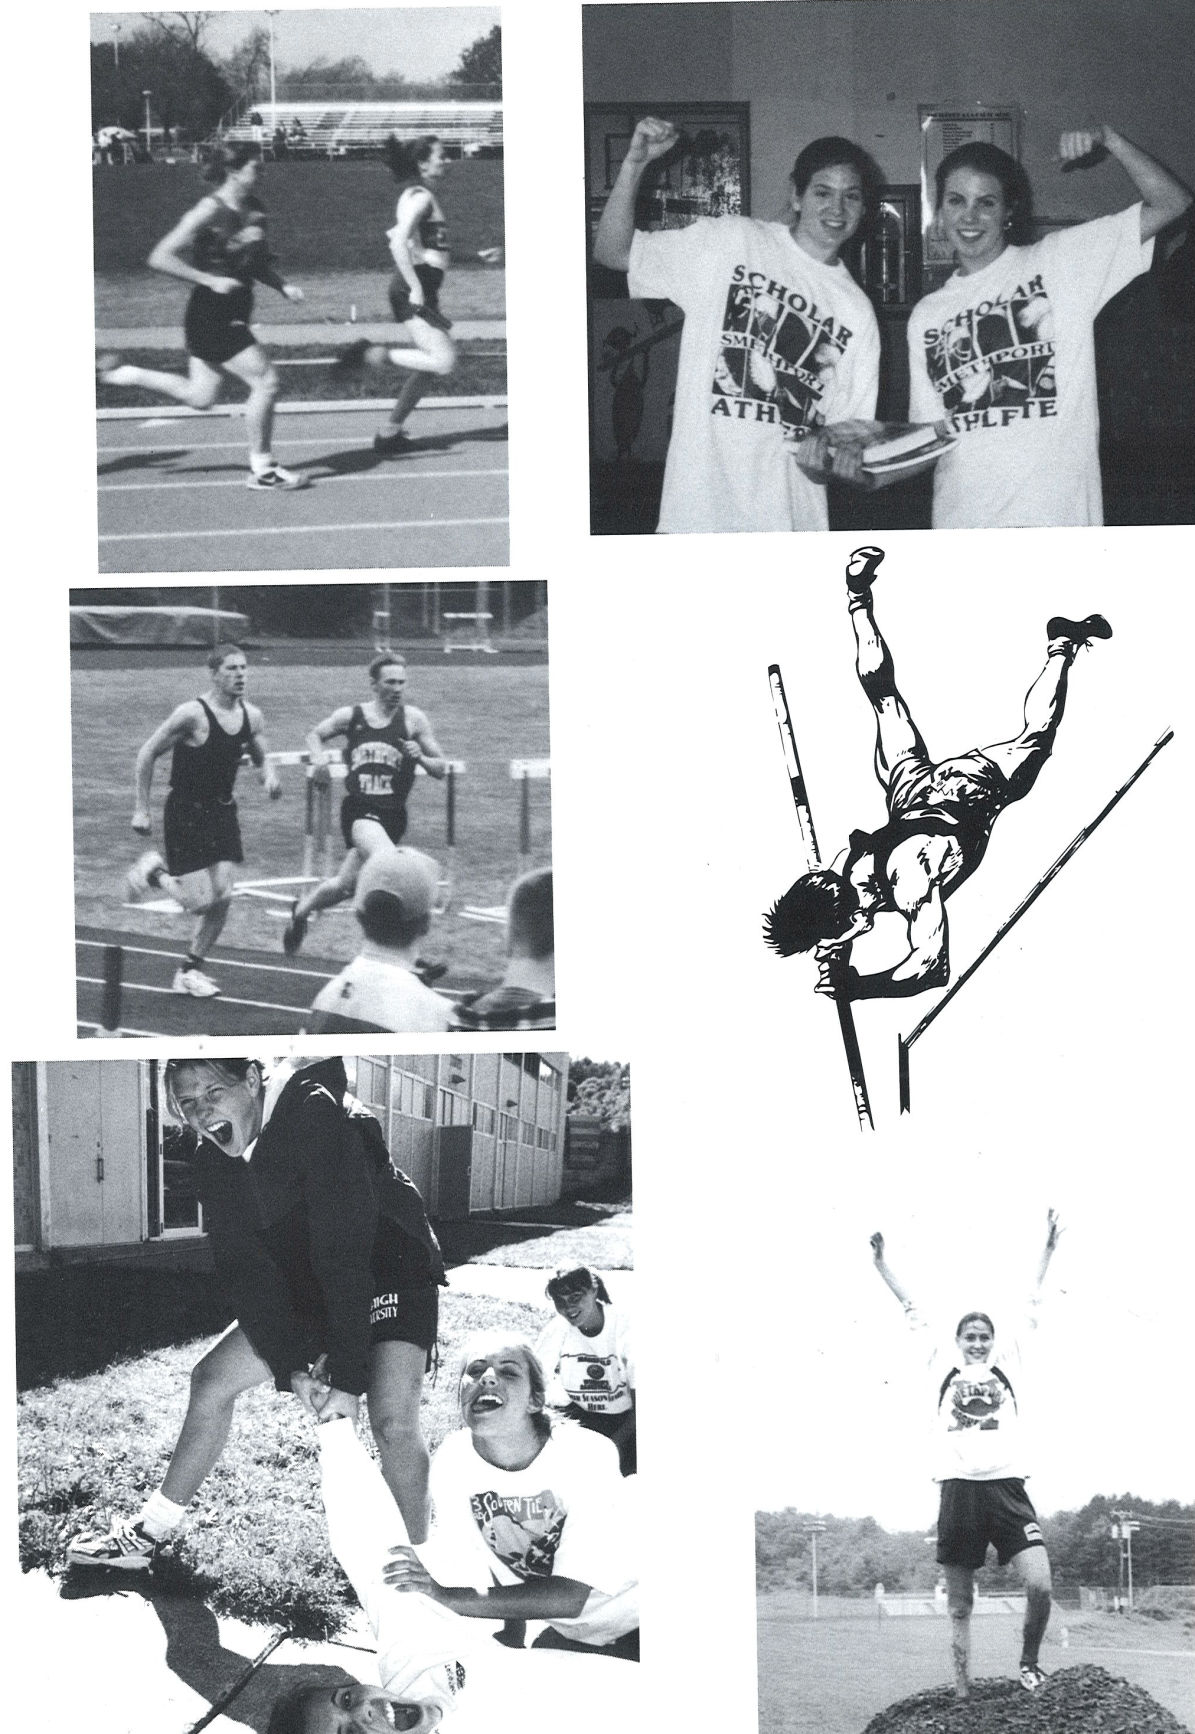 The 1997 Smethport girls track and field team